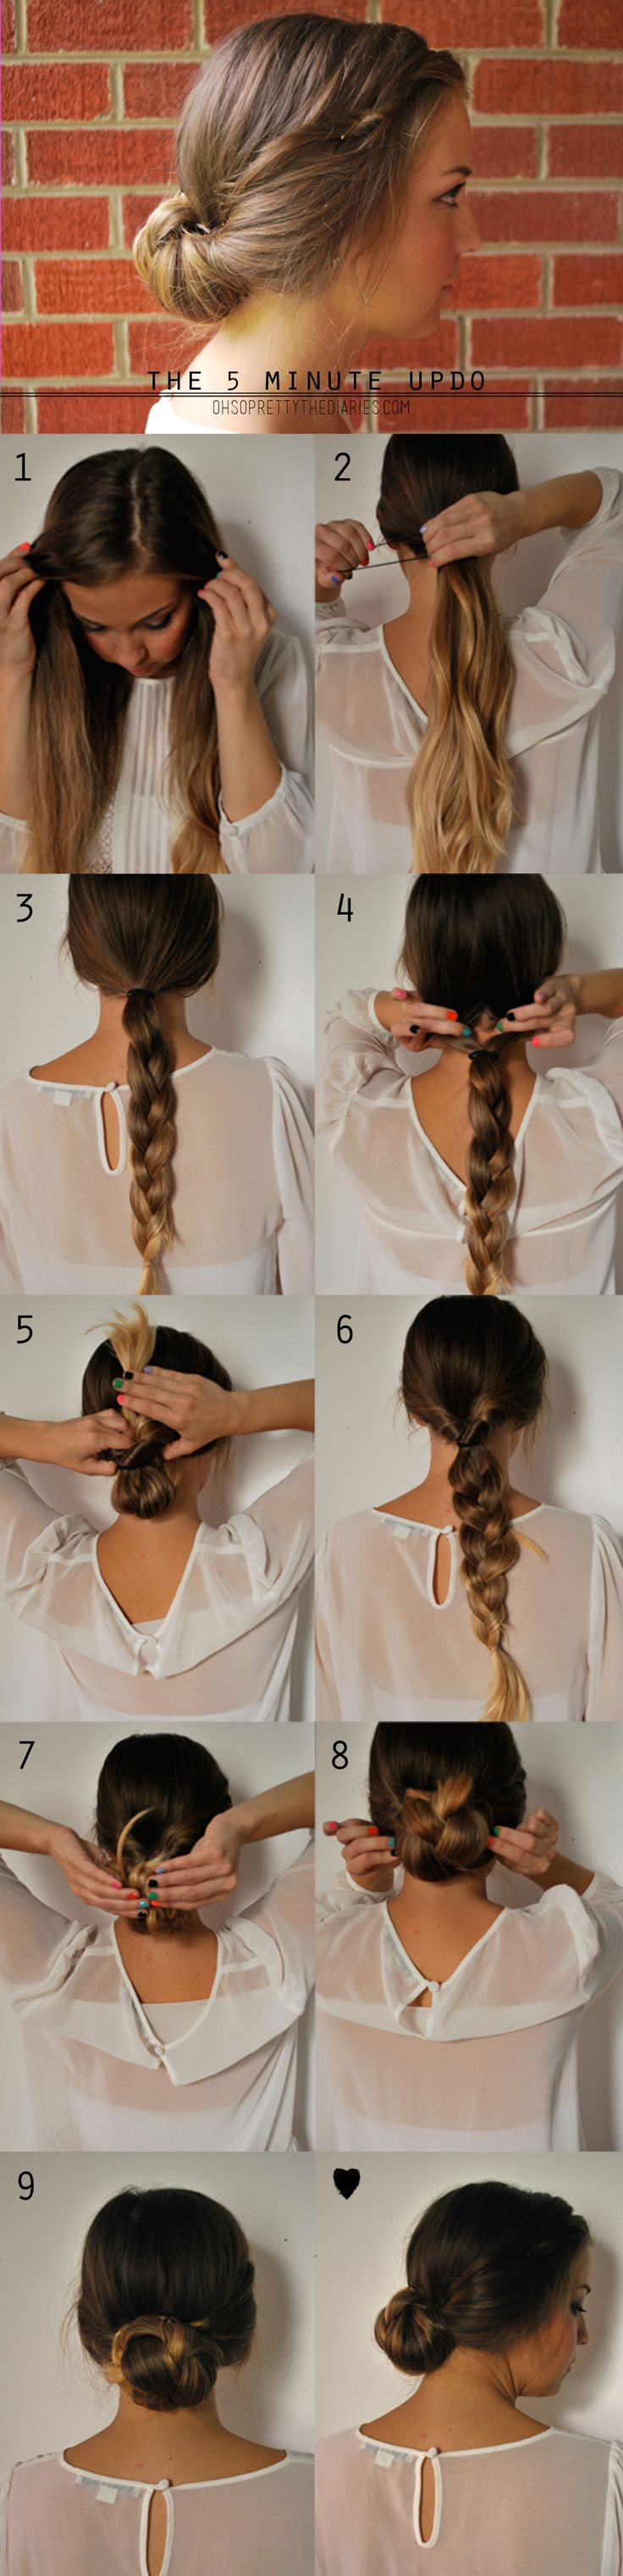 7. Roll the bottom of the braid into itself, upward, towards the top hair tie. 8. After you've rolled it all the way up, pin it in place with some bobby pins. Loosen the braid and pin the sides of the braid to your head. Just do what you need to. Hairs sticking out everywhere?